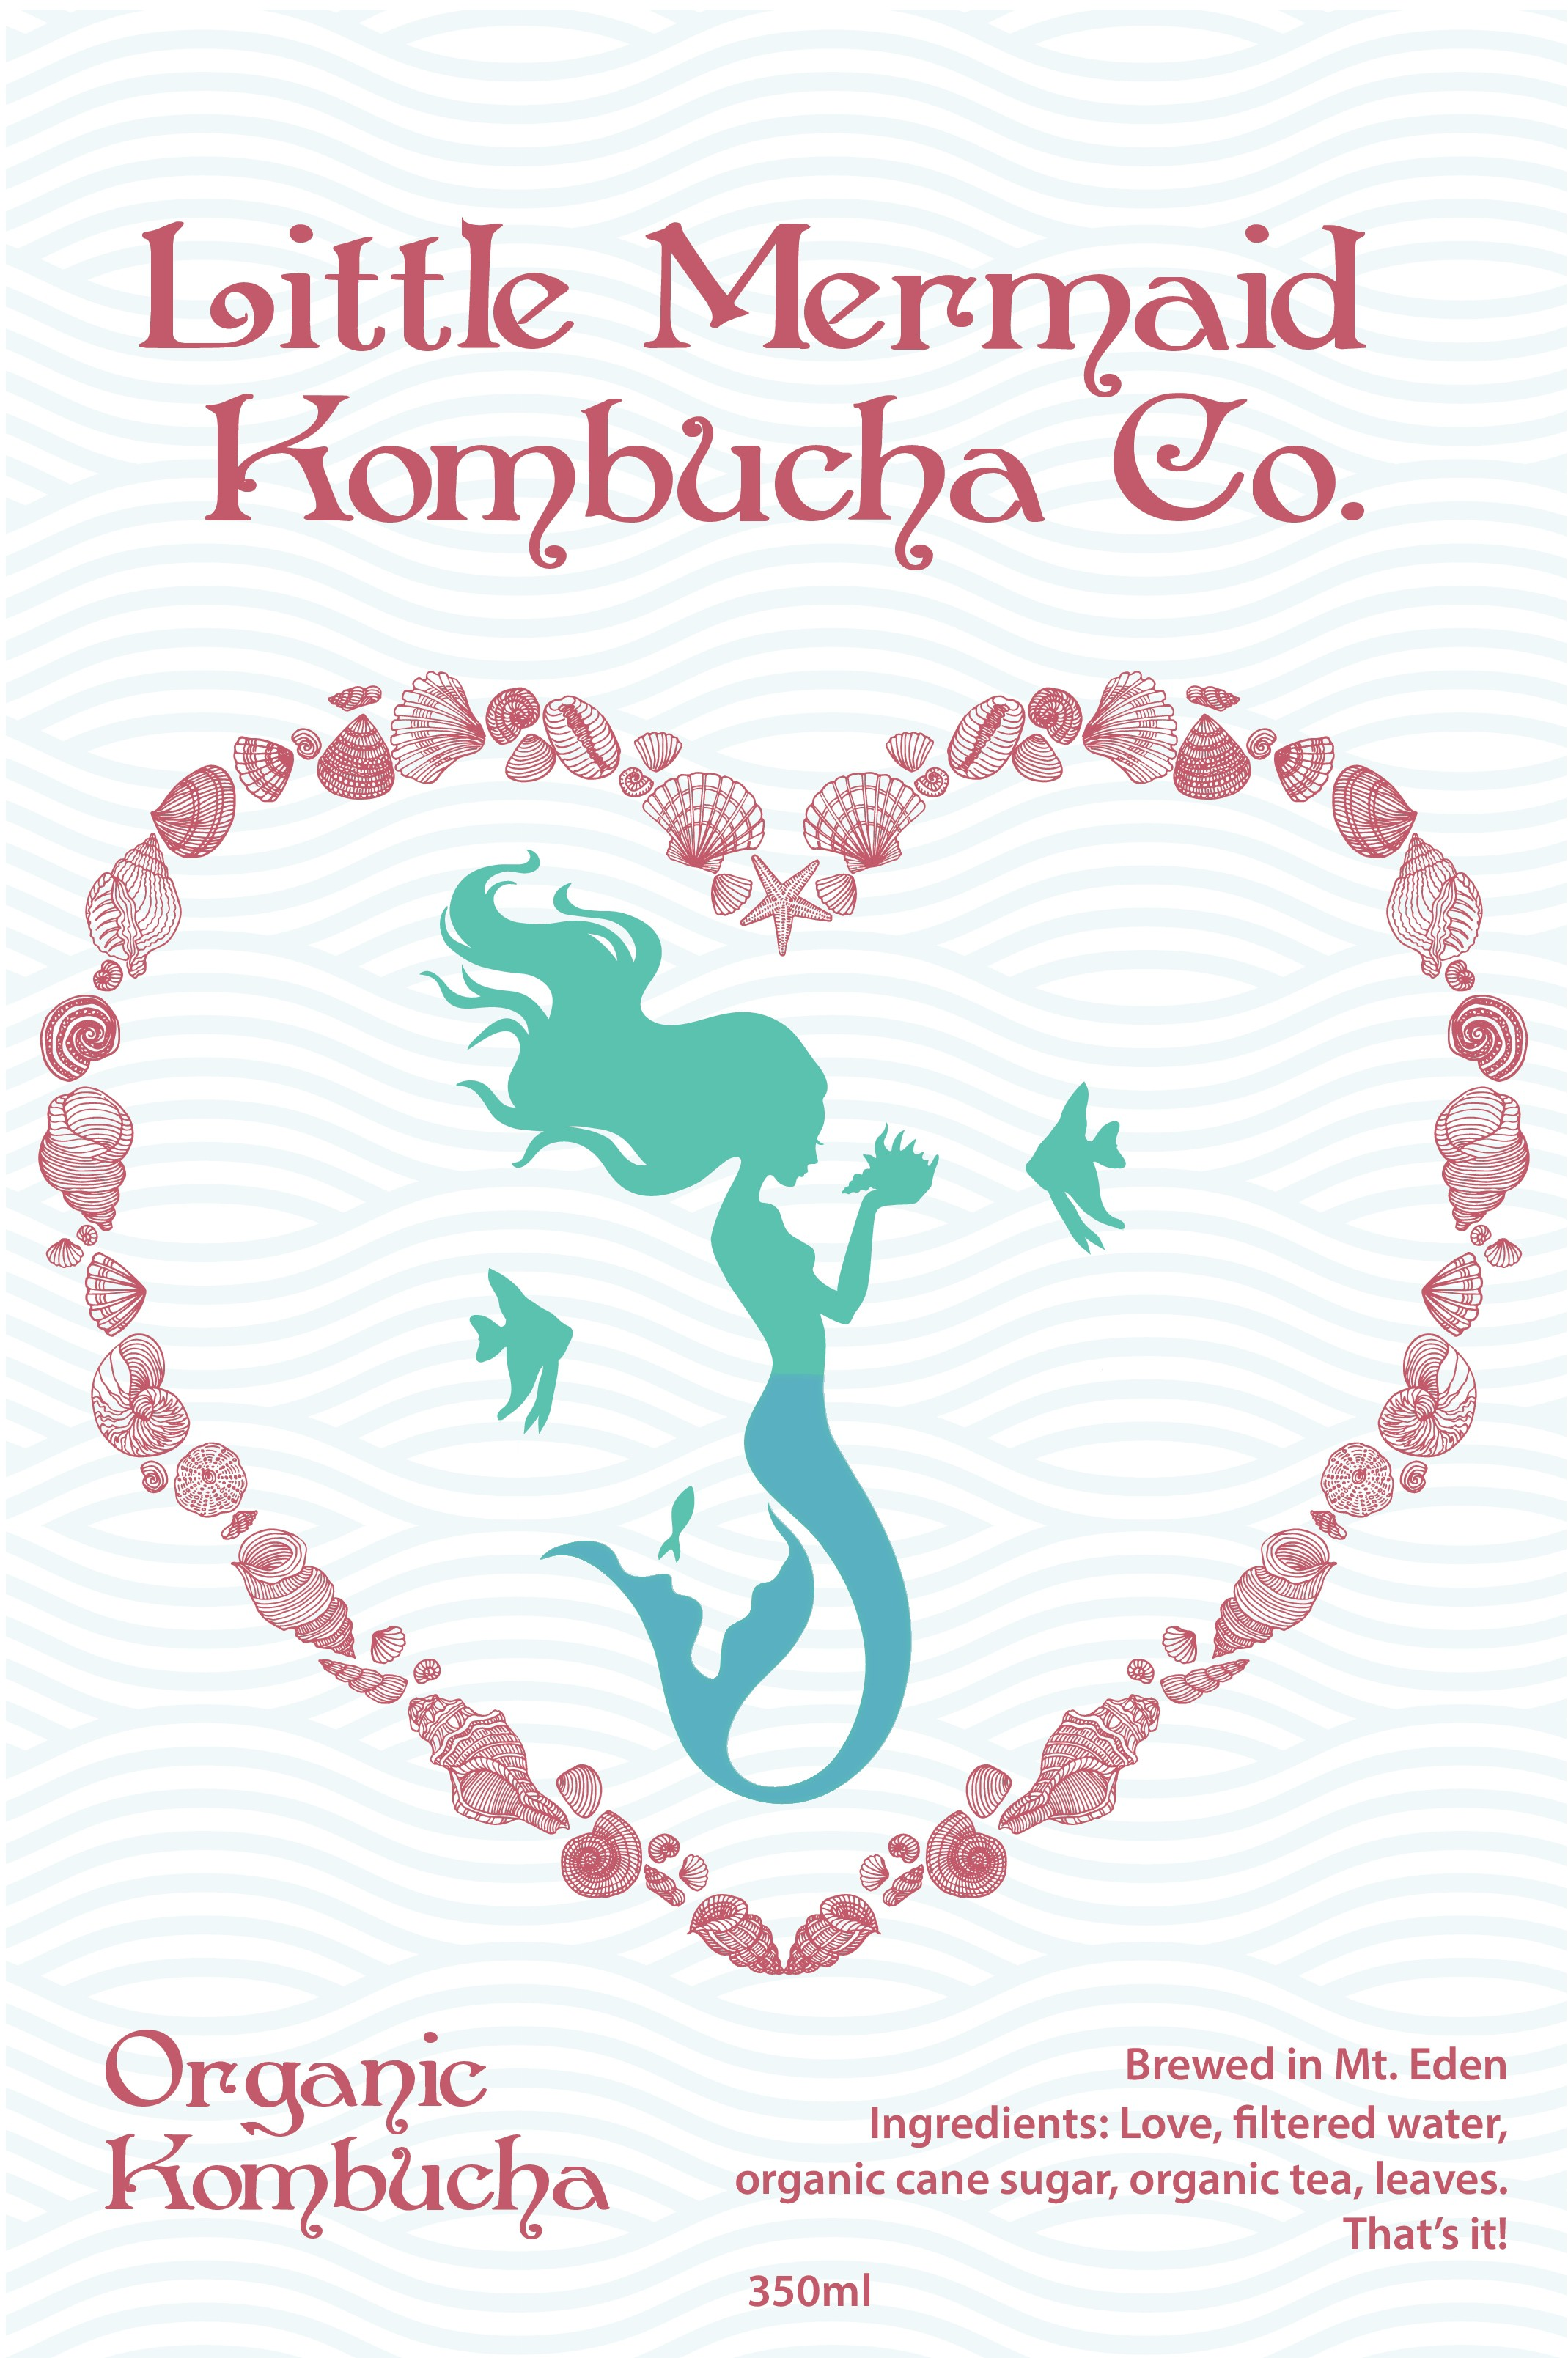 Design a fun label for our kombucha which brings happiness to those who see it.